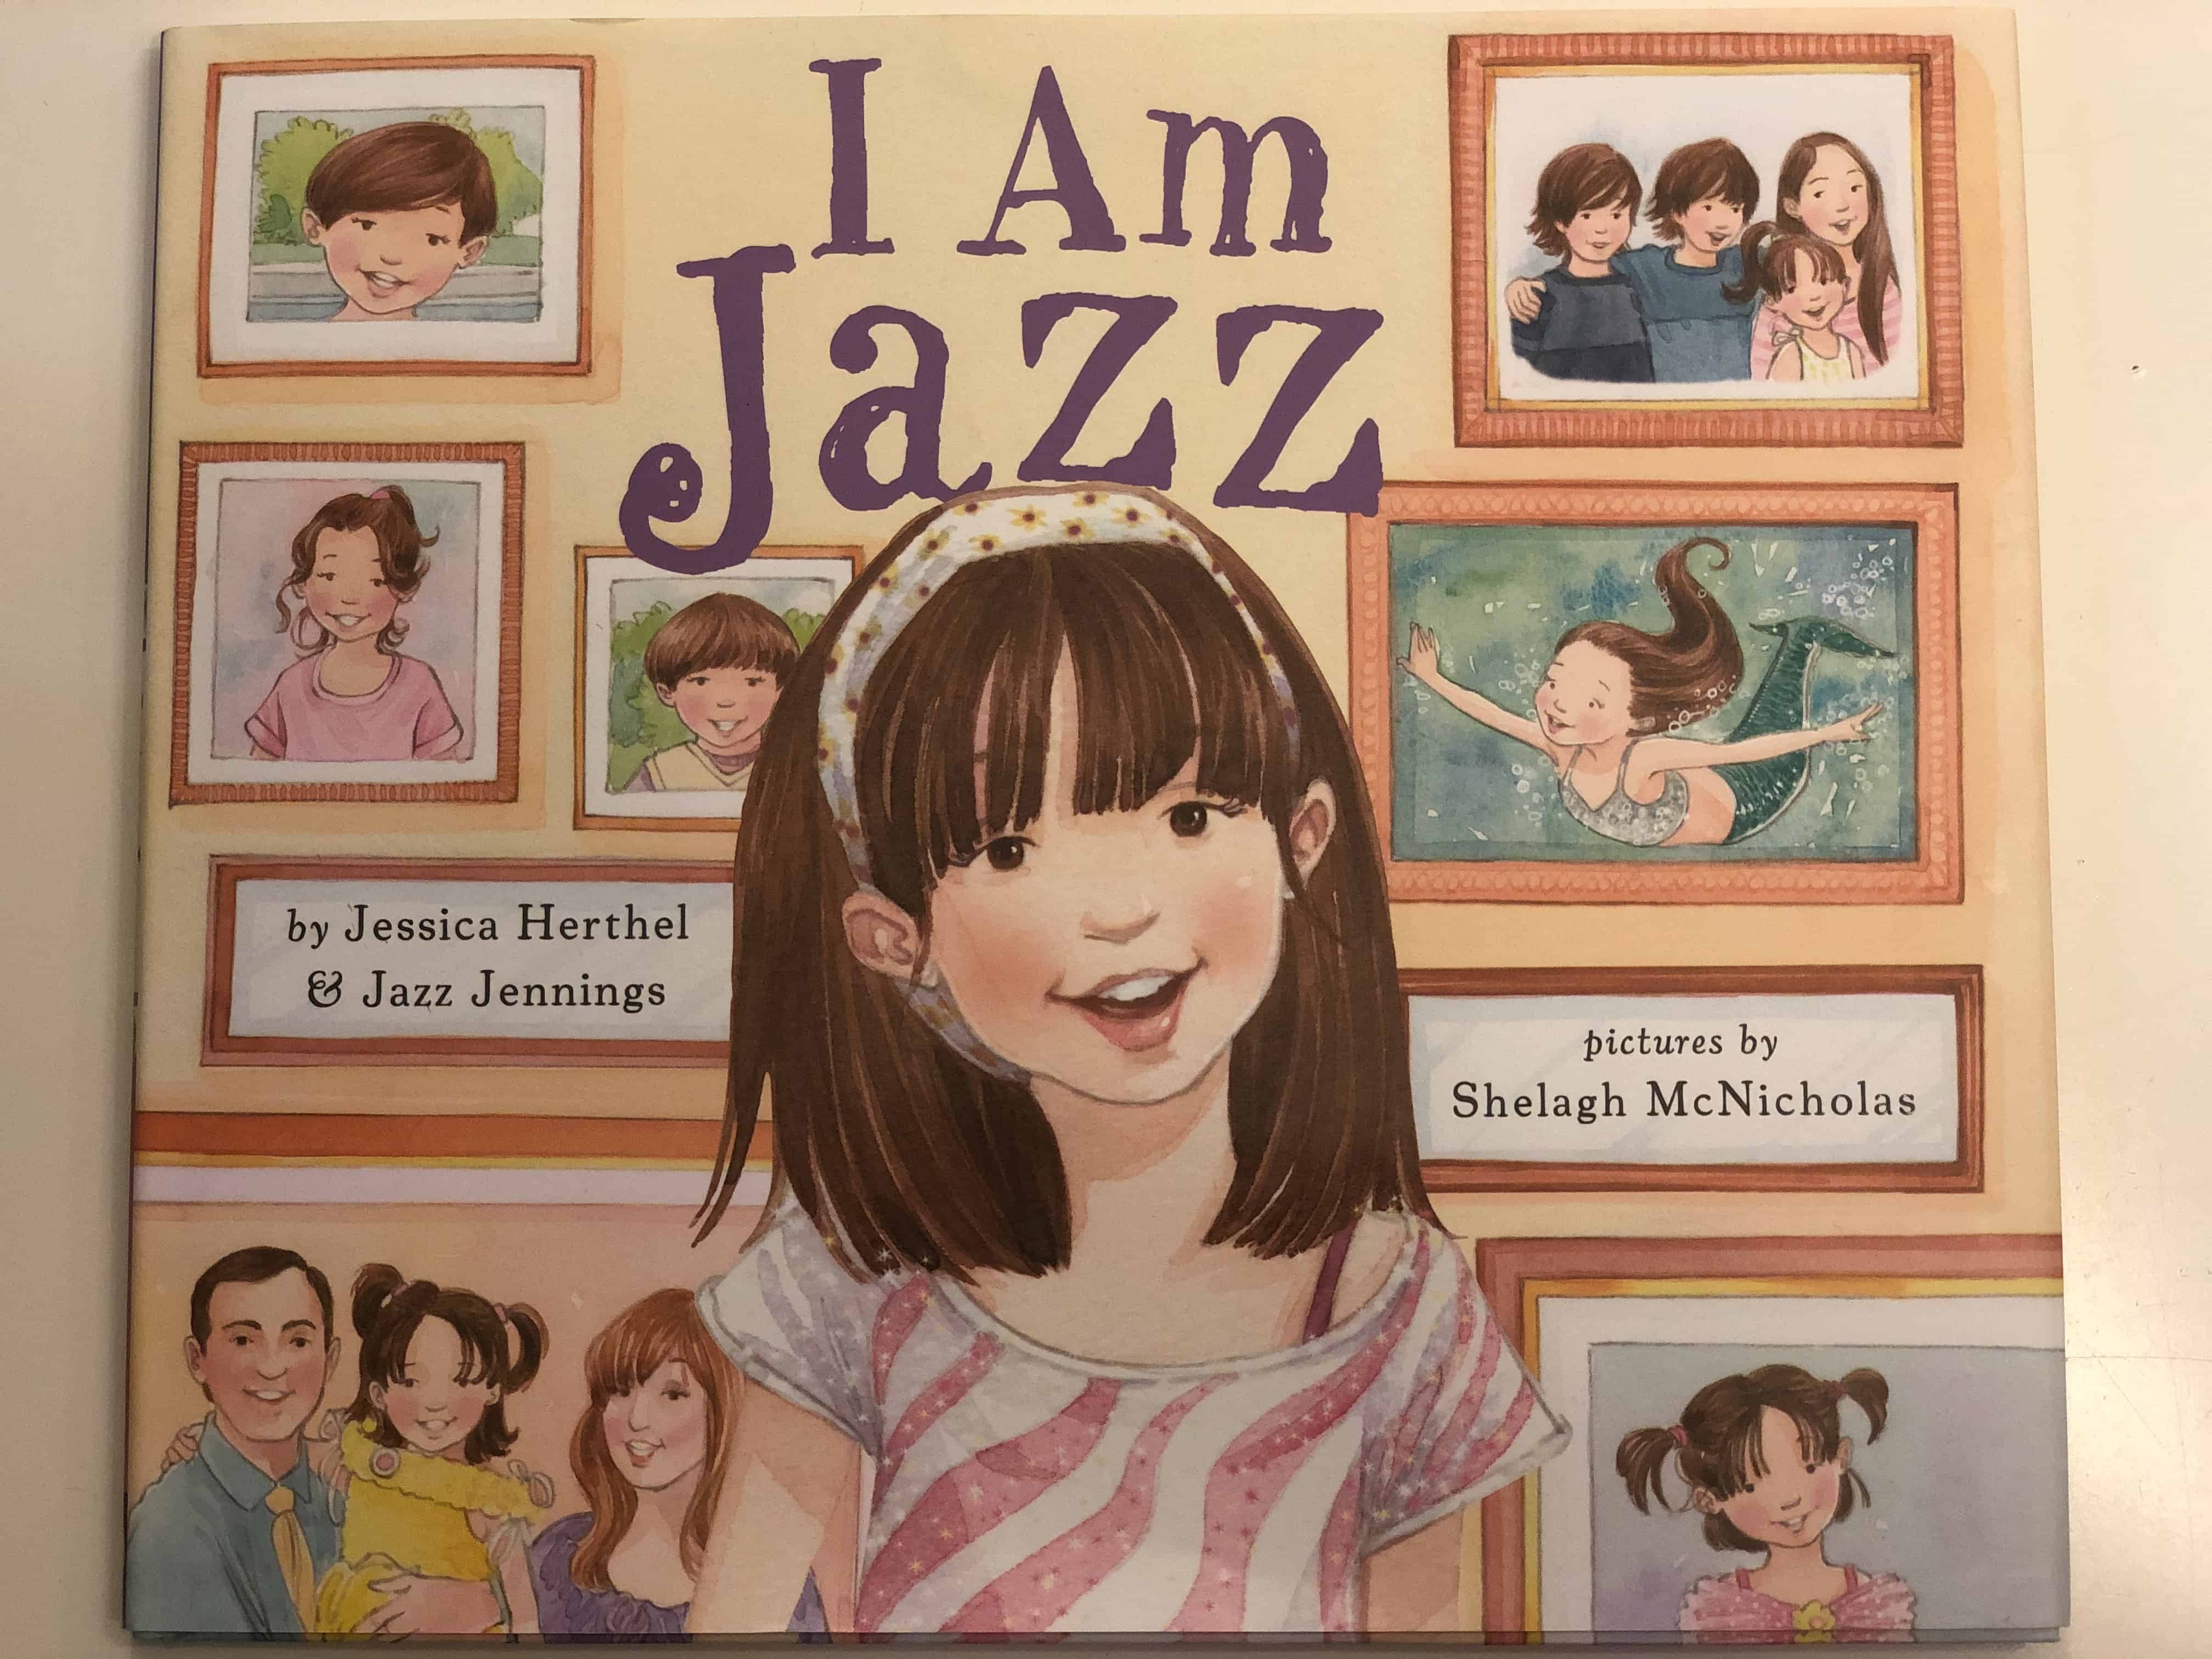 Looking for children's picture books that celebrate gender diversity in children and encourage play free from gender role stereotypes? Here are 10 books that normalize diversity of gender identity in children and encourage young readers to play and discover what they like.